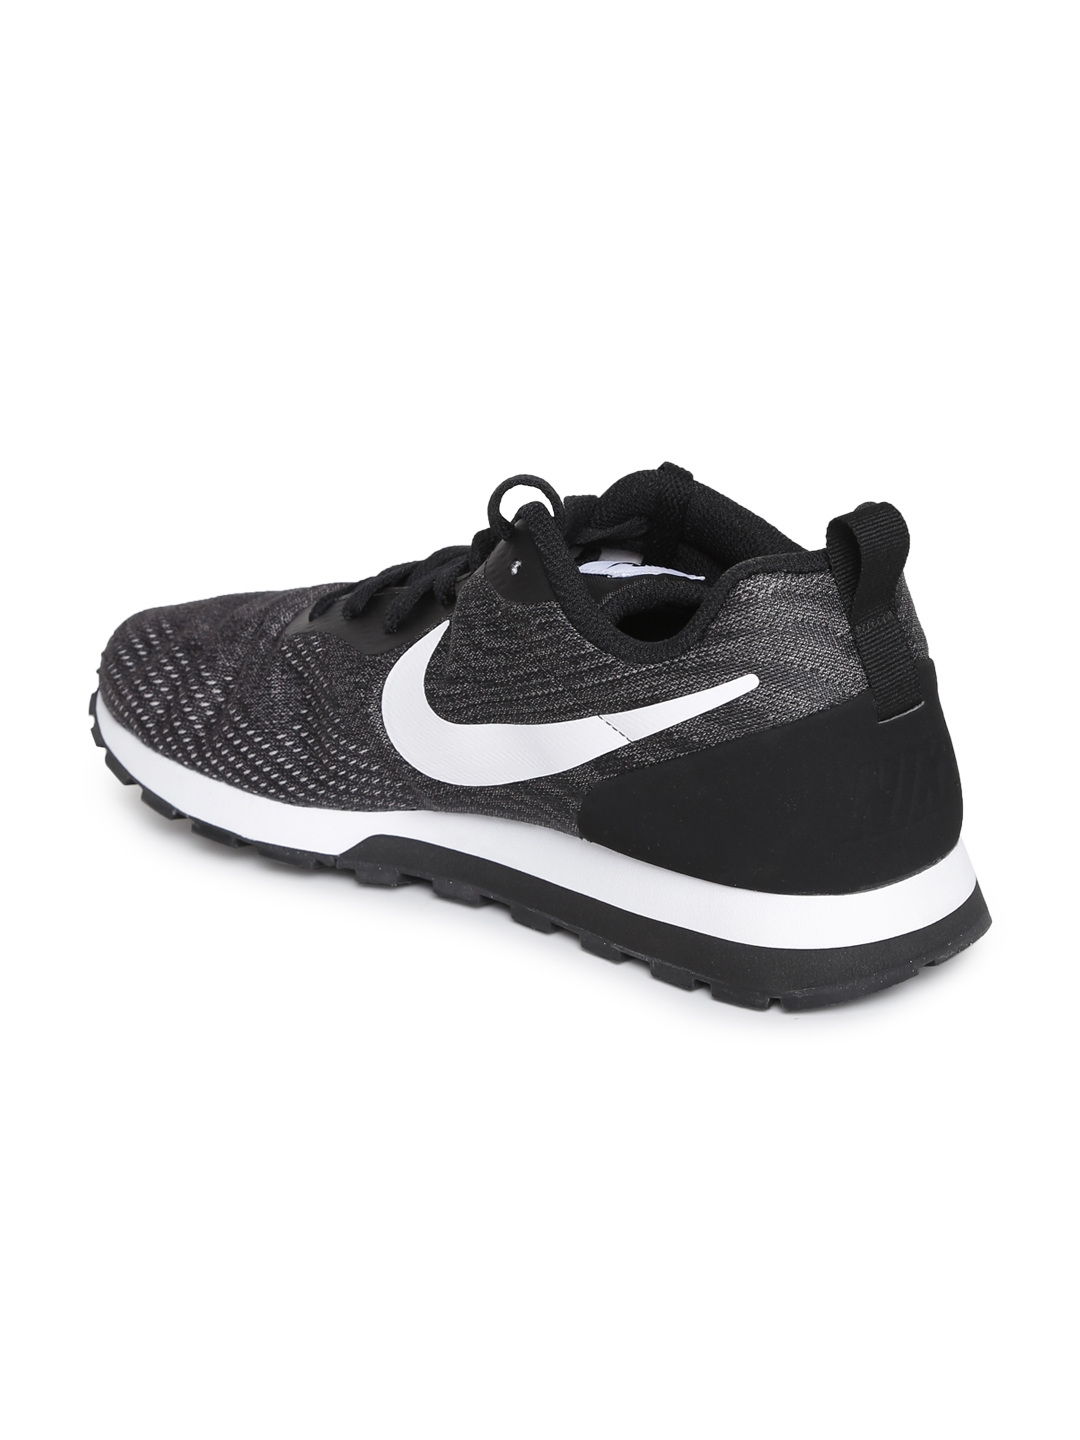 89ab3f7ea0d 11513322354090-Nike-Men-Casual-Shoes-1901513322354013-2.jpg